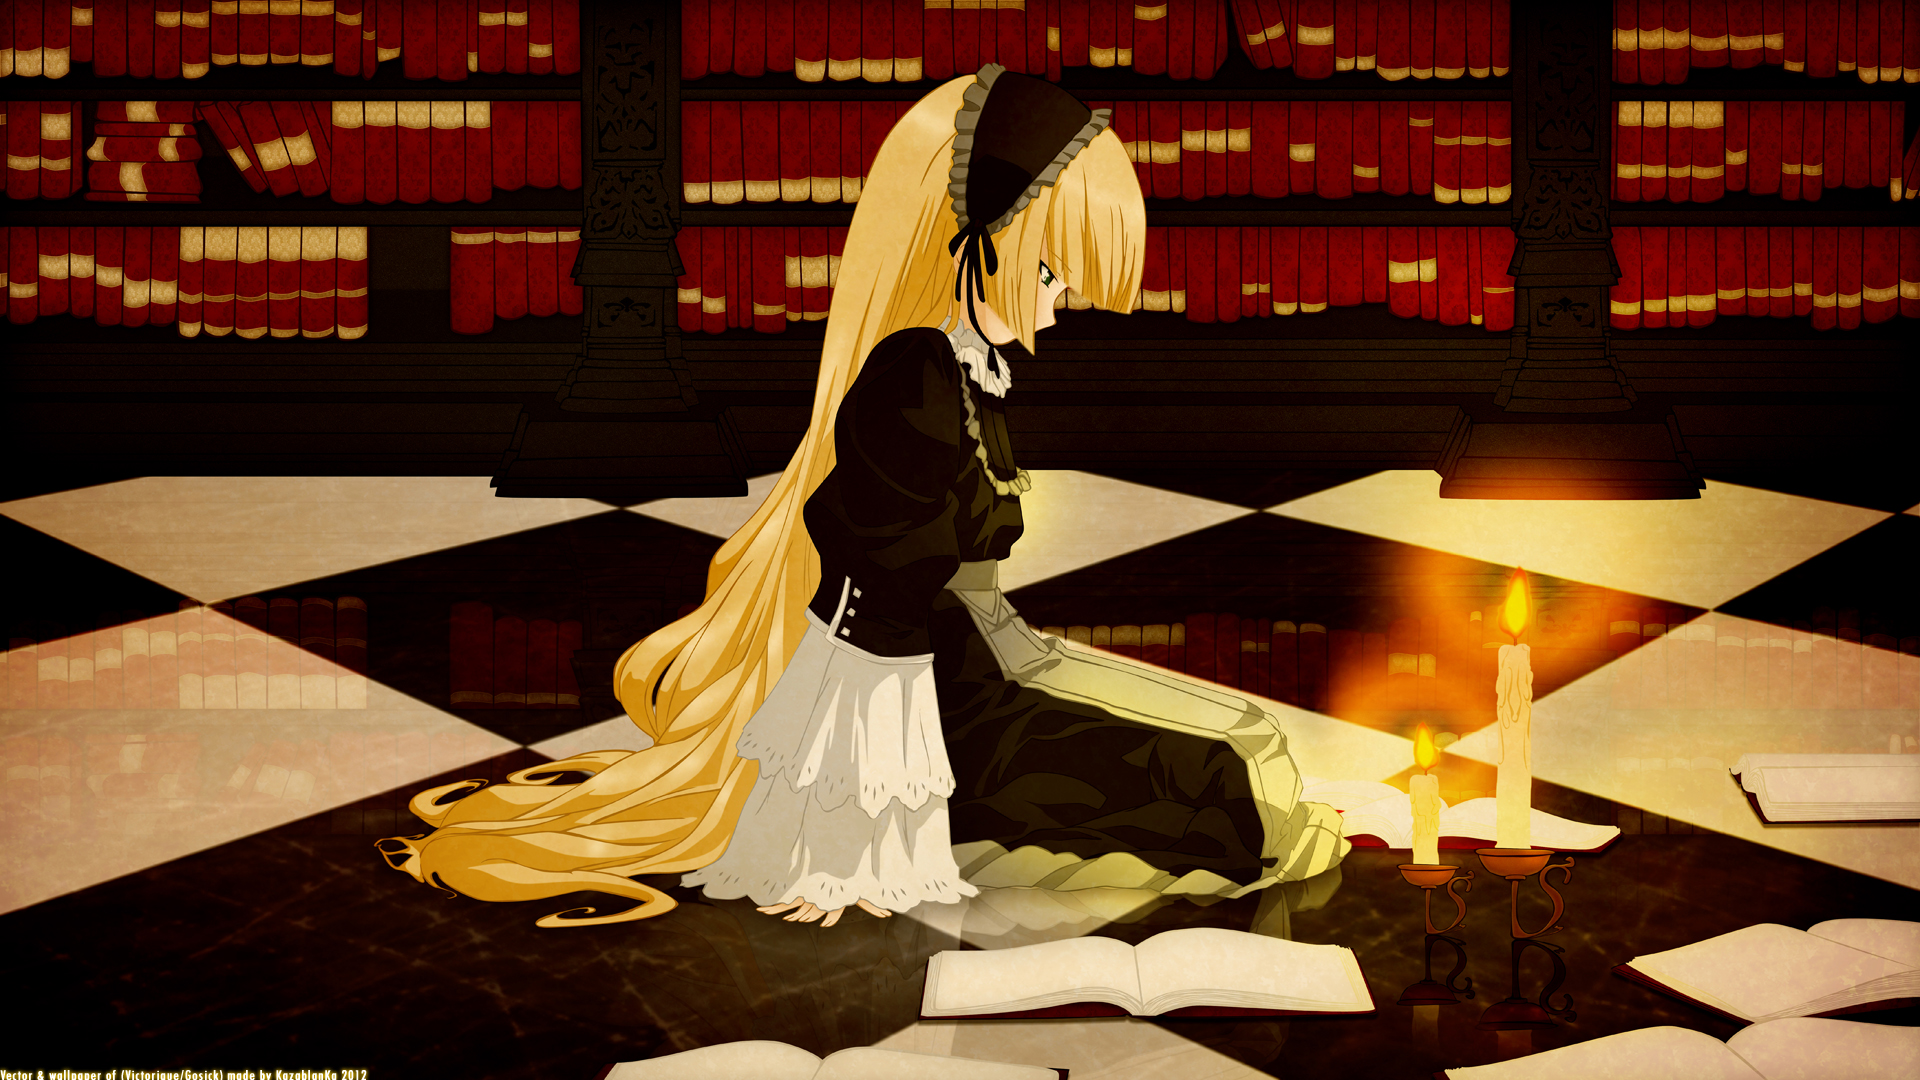 Cute Girl Wallpaper For Profile Pic Gosick Hd Wallpaper Background Image 1920x1080 Id